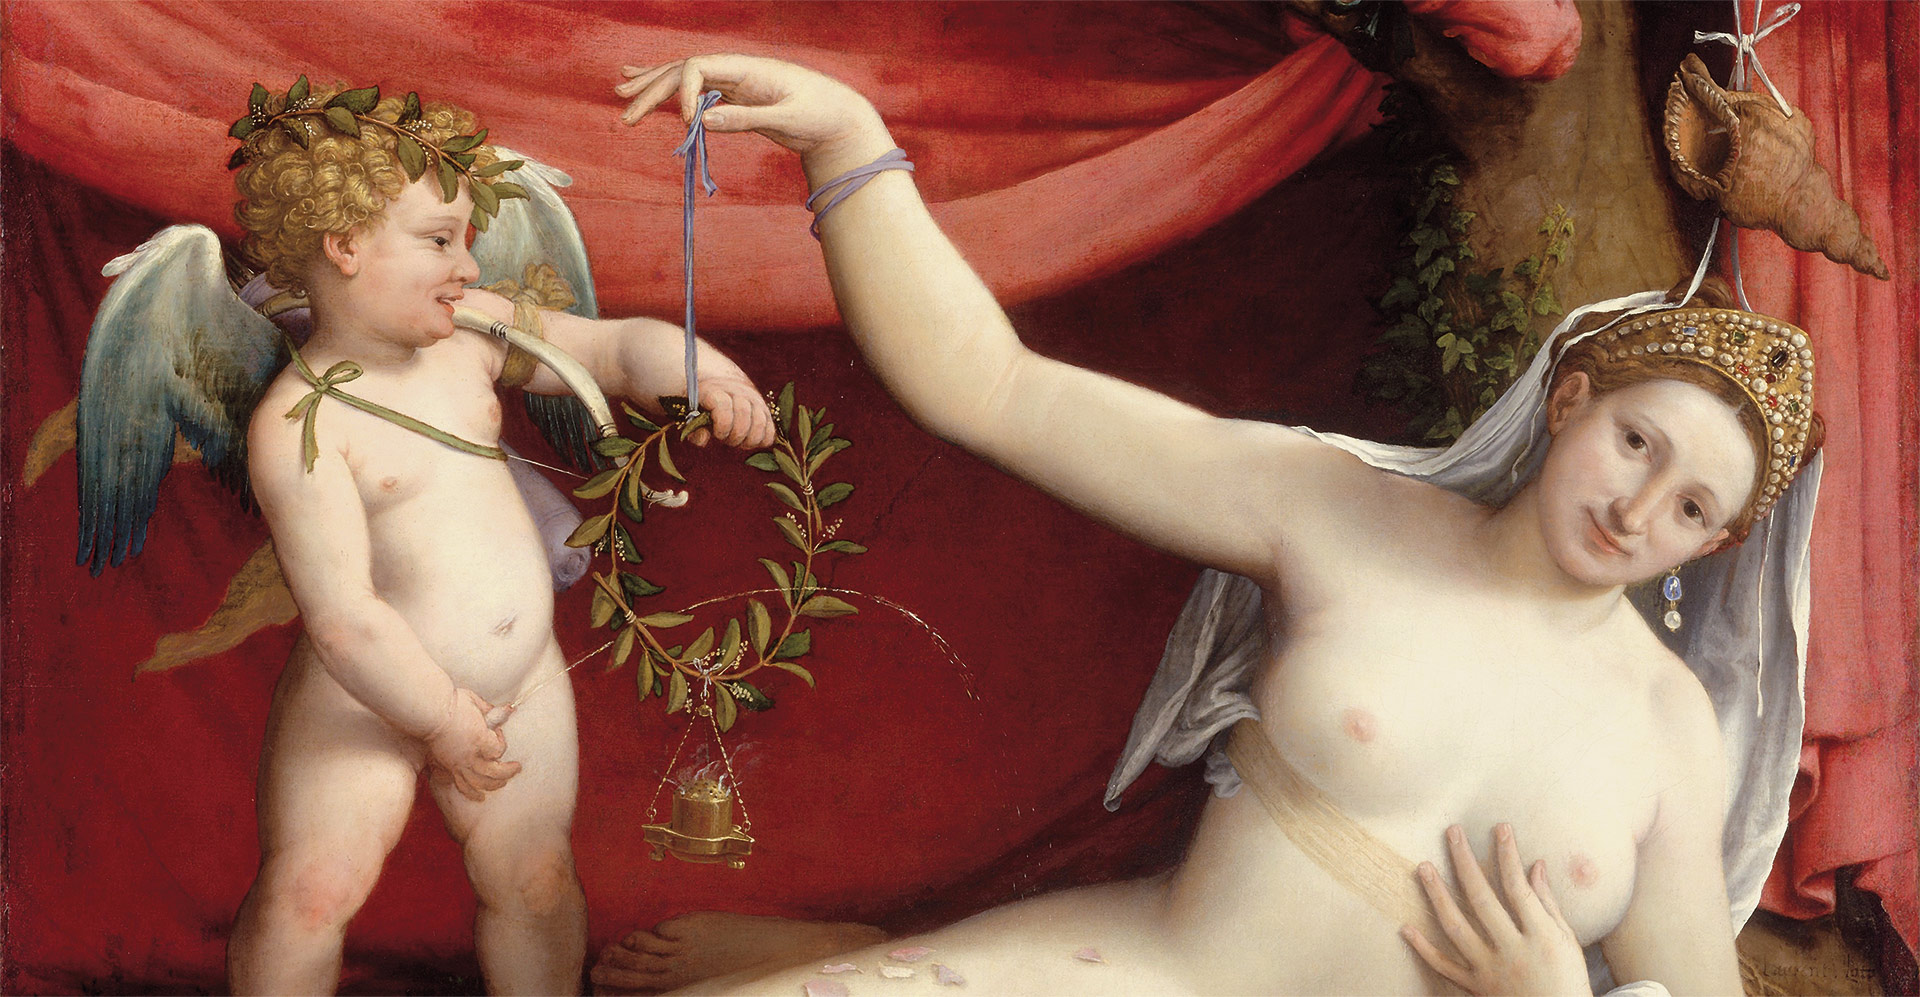 A detail from a painting by Lorenzo Lotto, titled Venus and Cupid, dated c. 1525.